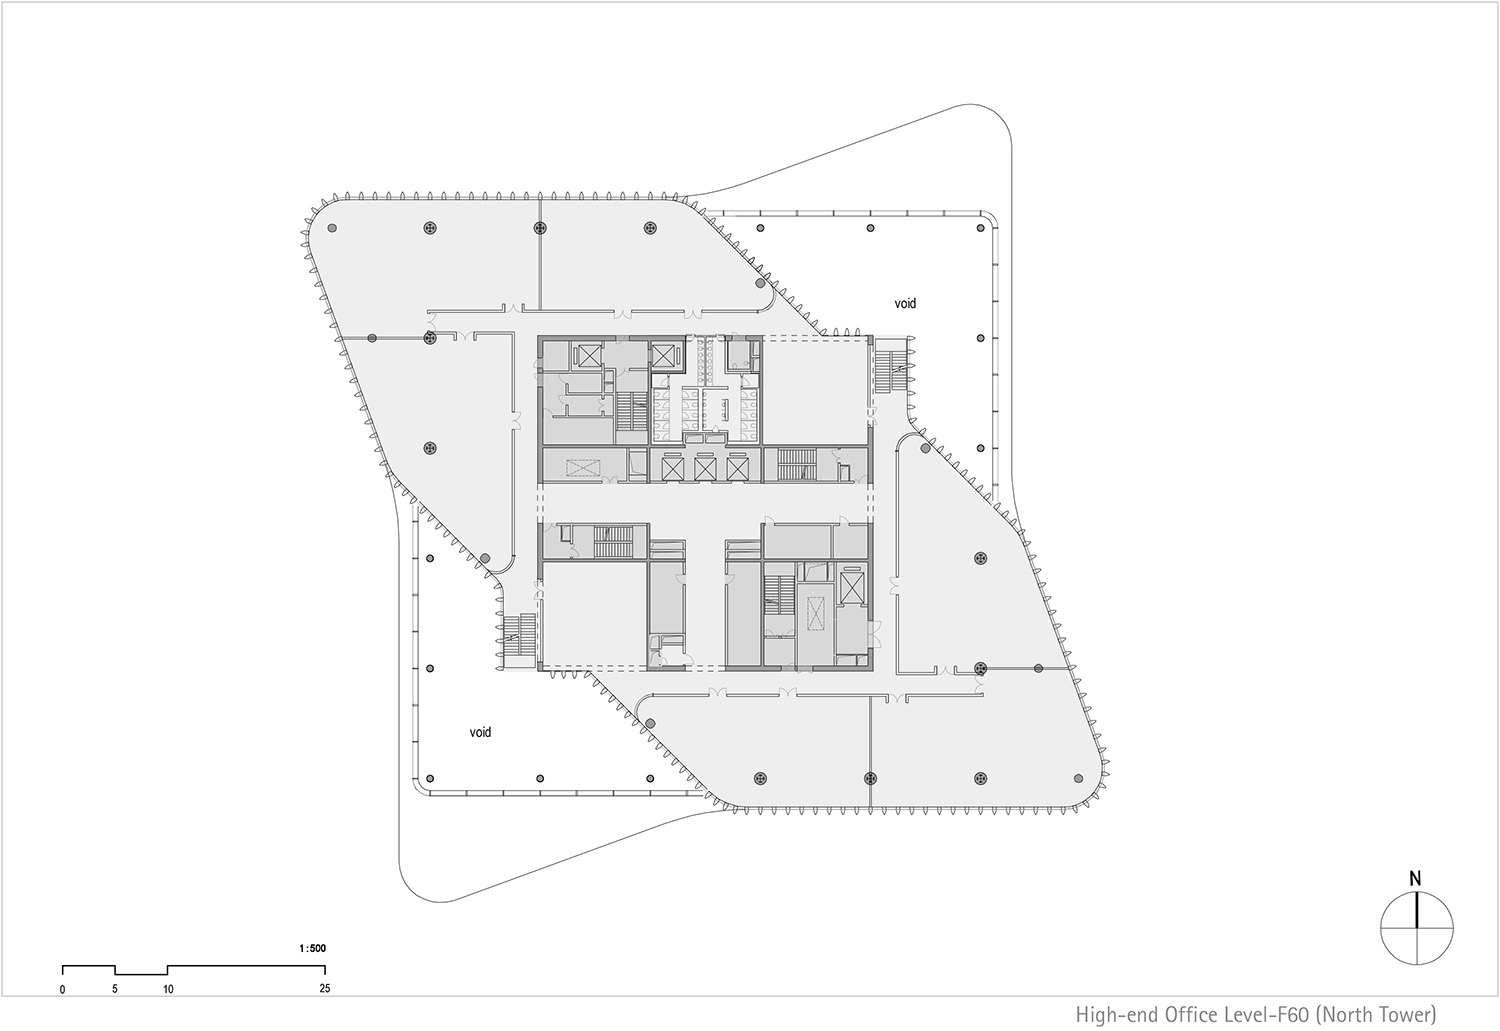 Floor plan north tower, level 60 © gmp Architects}